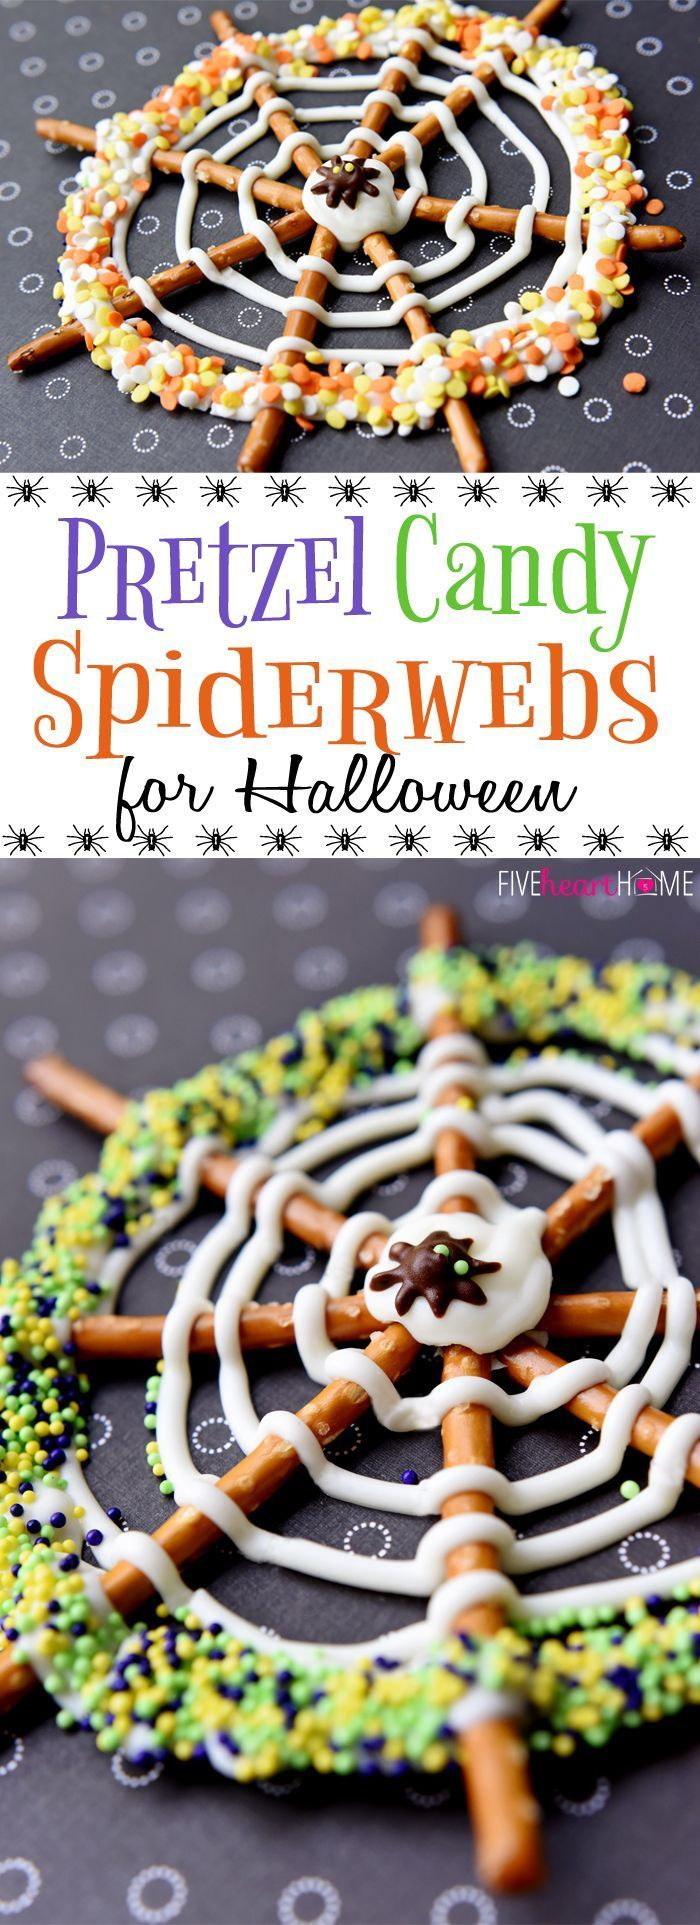 17 Best images about Easy Family Halloween Ideas on Pinterest ...